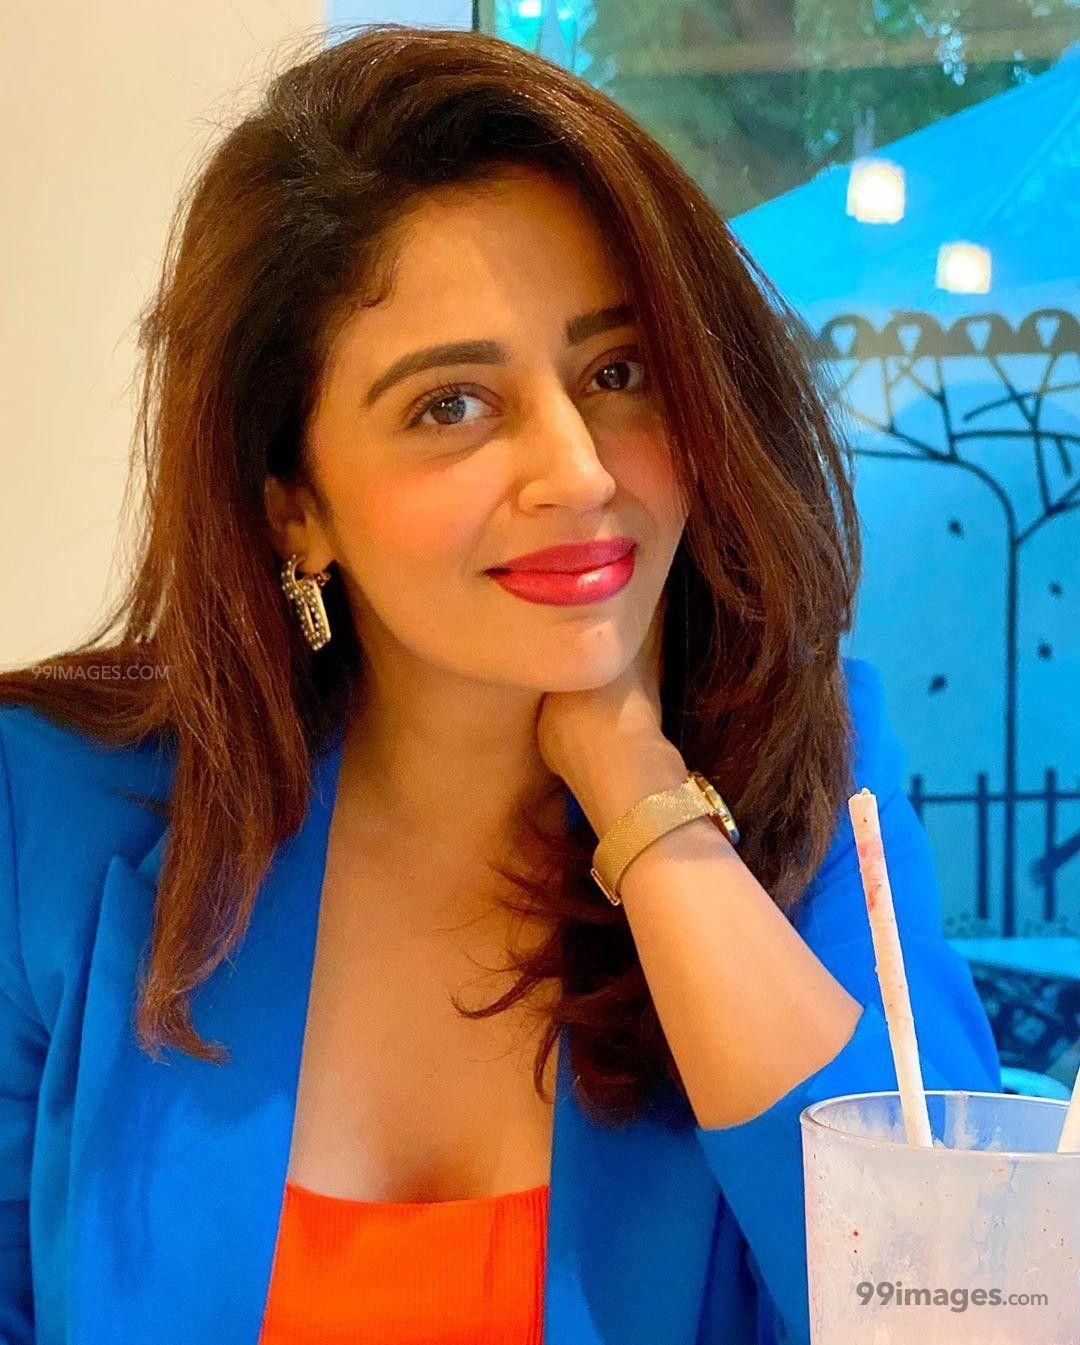 Neha Pendse Beautiful HD Photos & Mobile Wallpapers HD (Android/iPhone) (1080p) (165133) - Neha Pendse